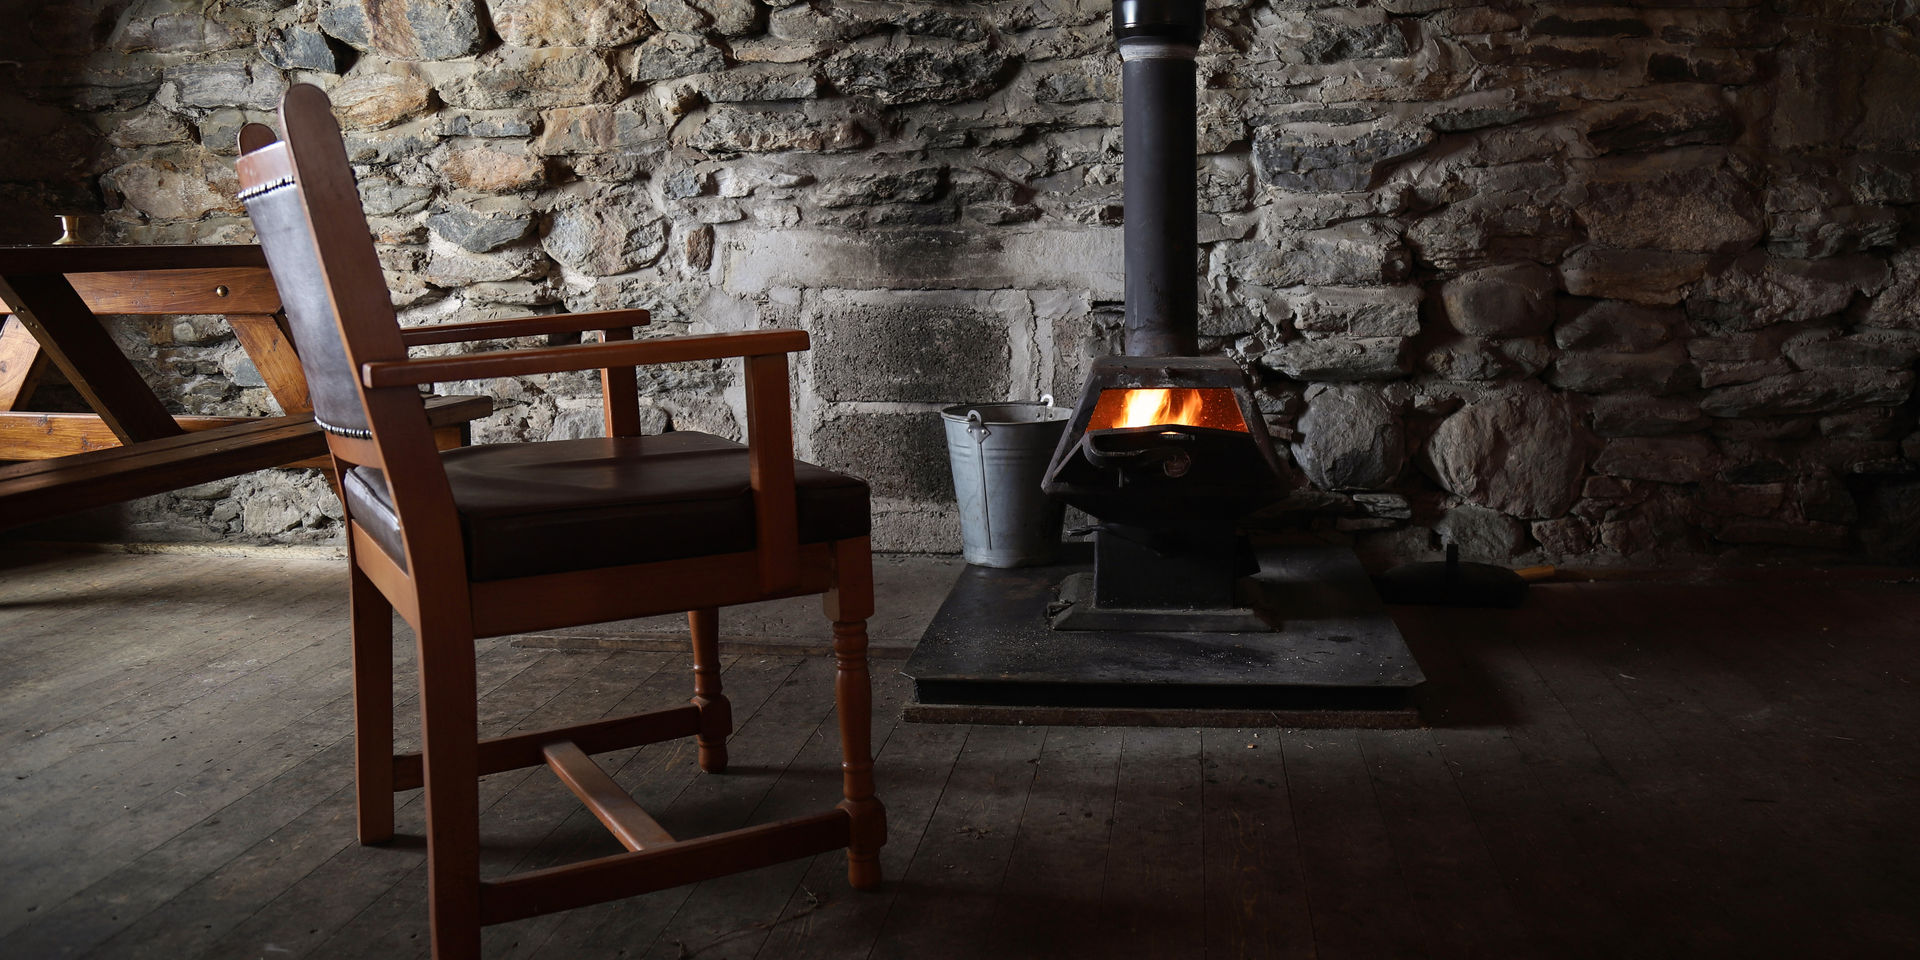 abyssinia stove wide